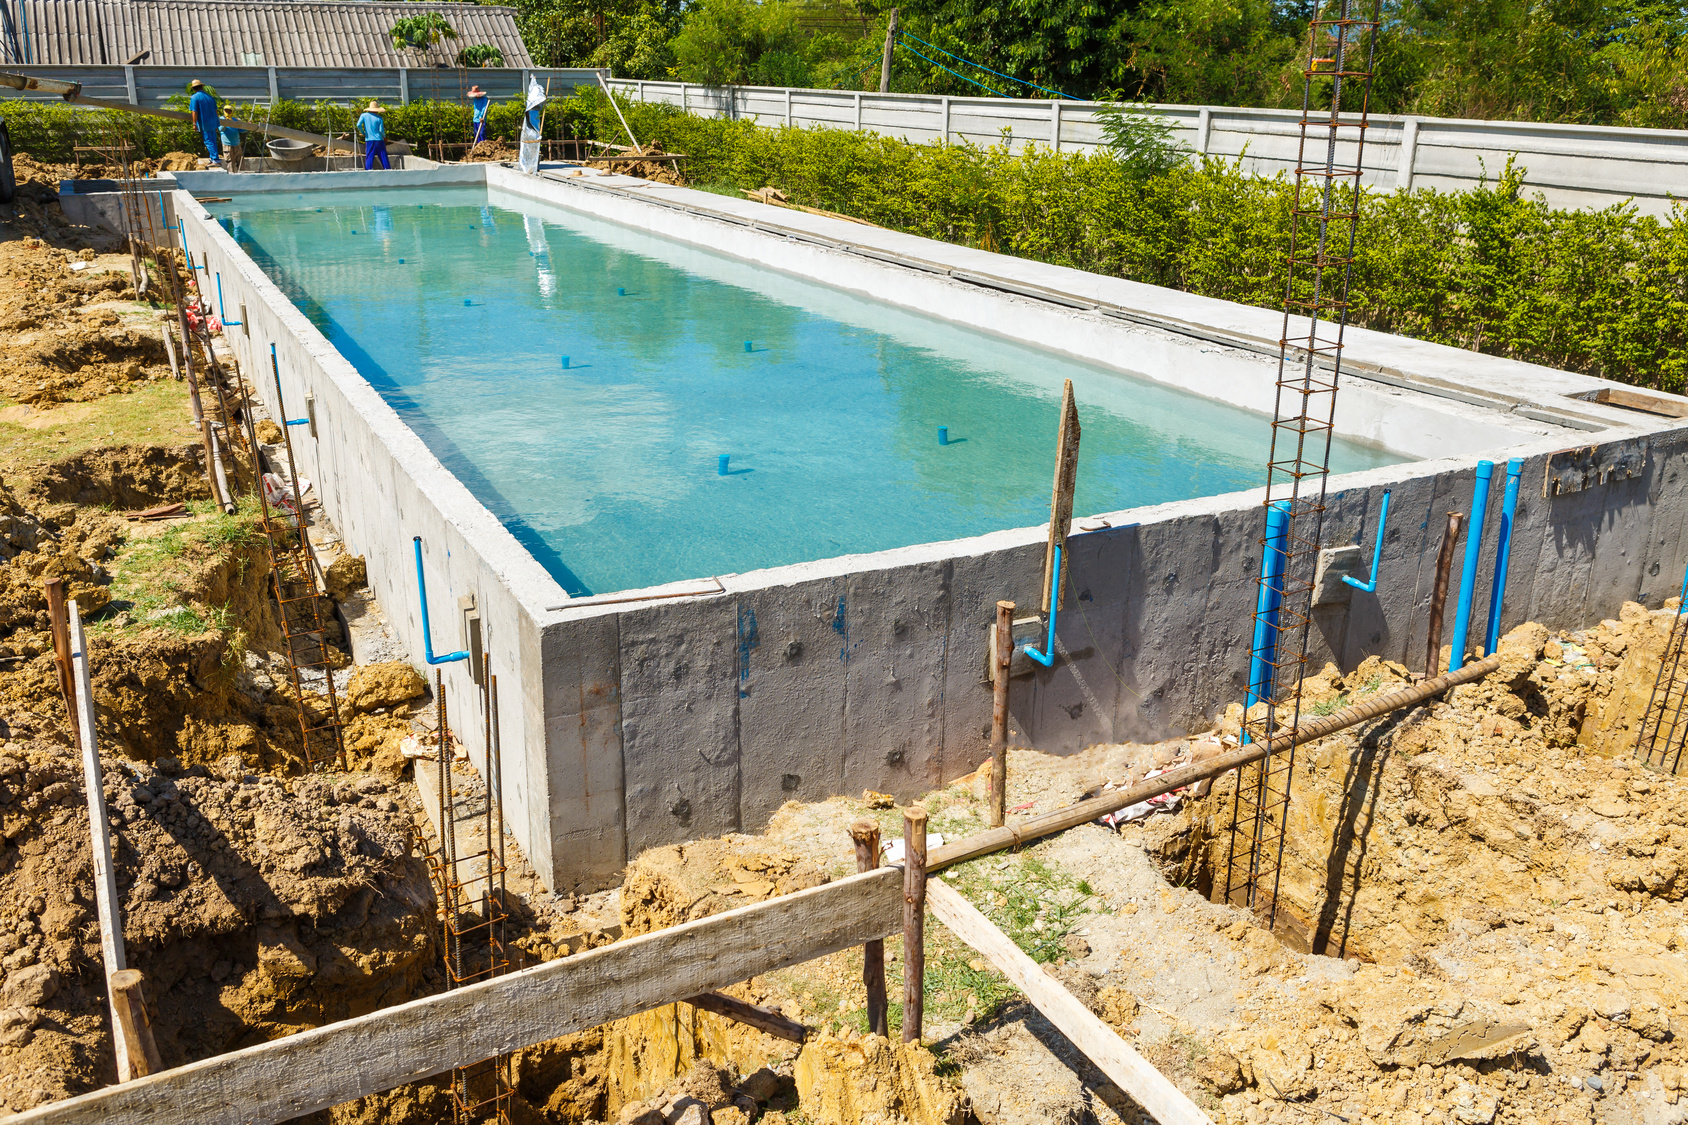 Construire une piscine b ton traditionnelle en kit - Prix piscine traditionnelle ...